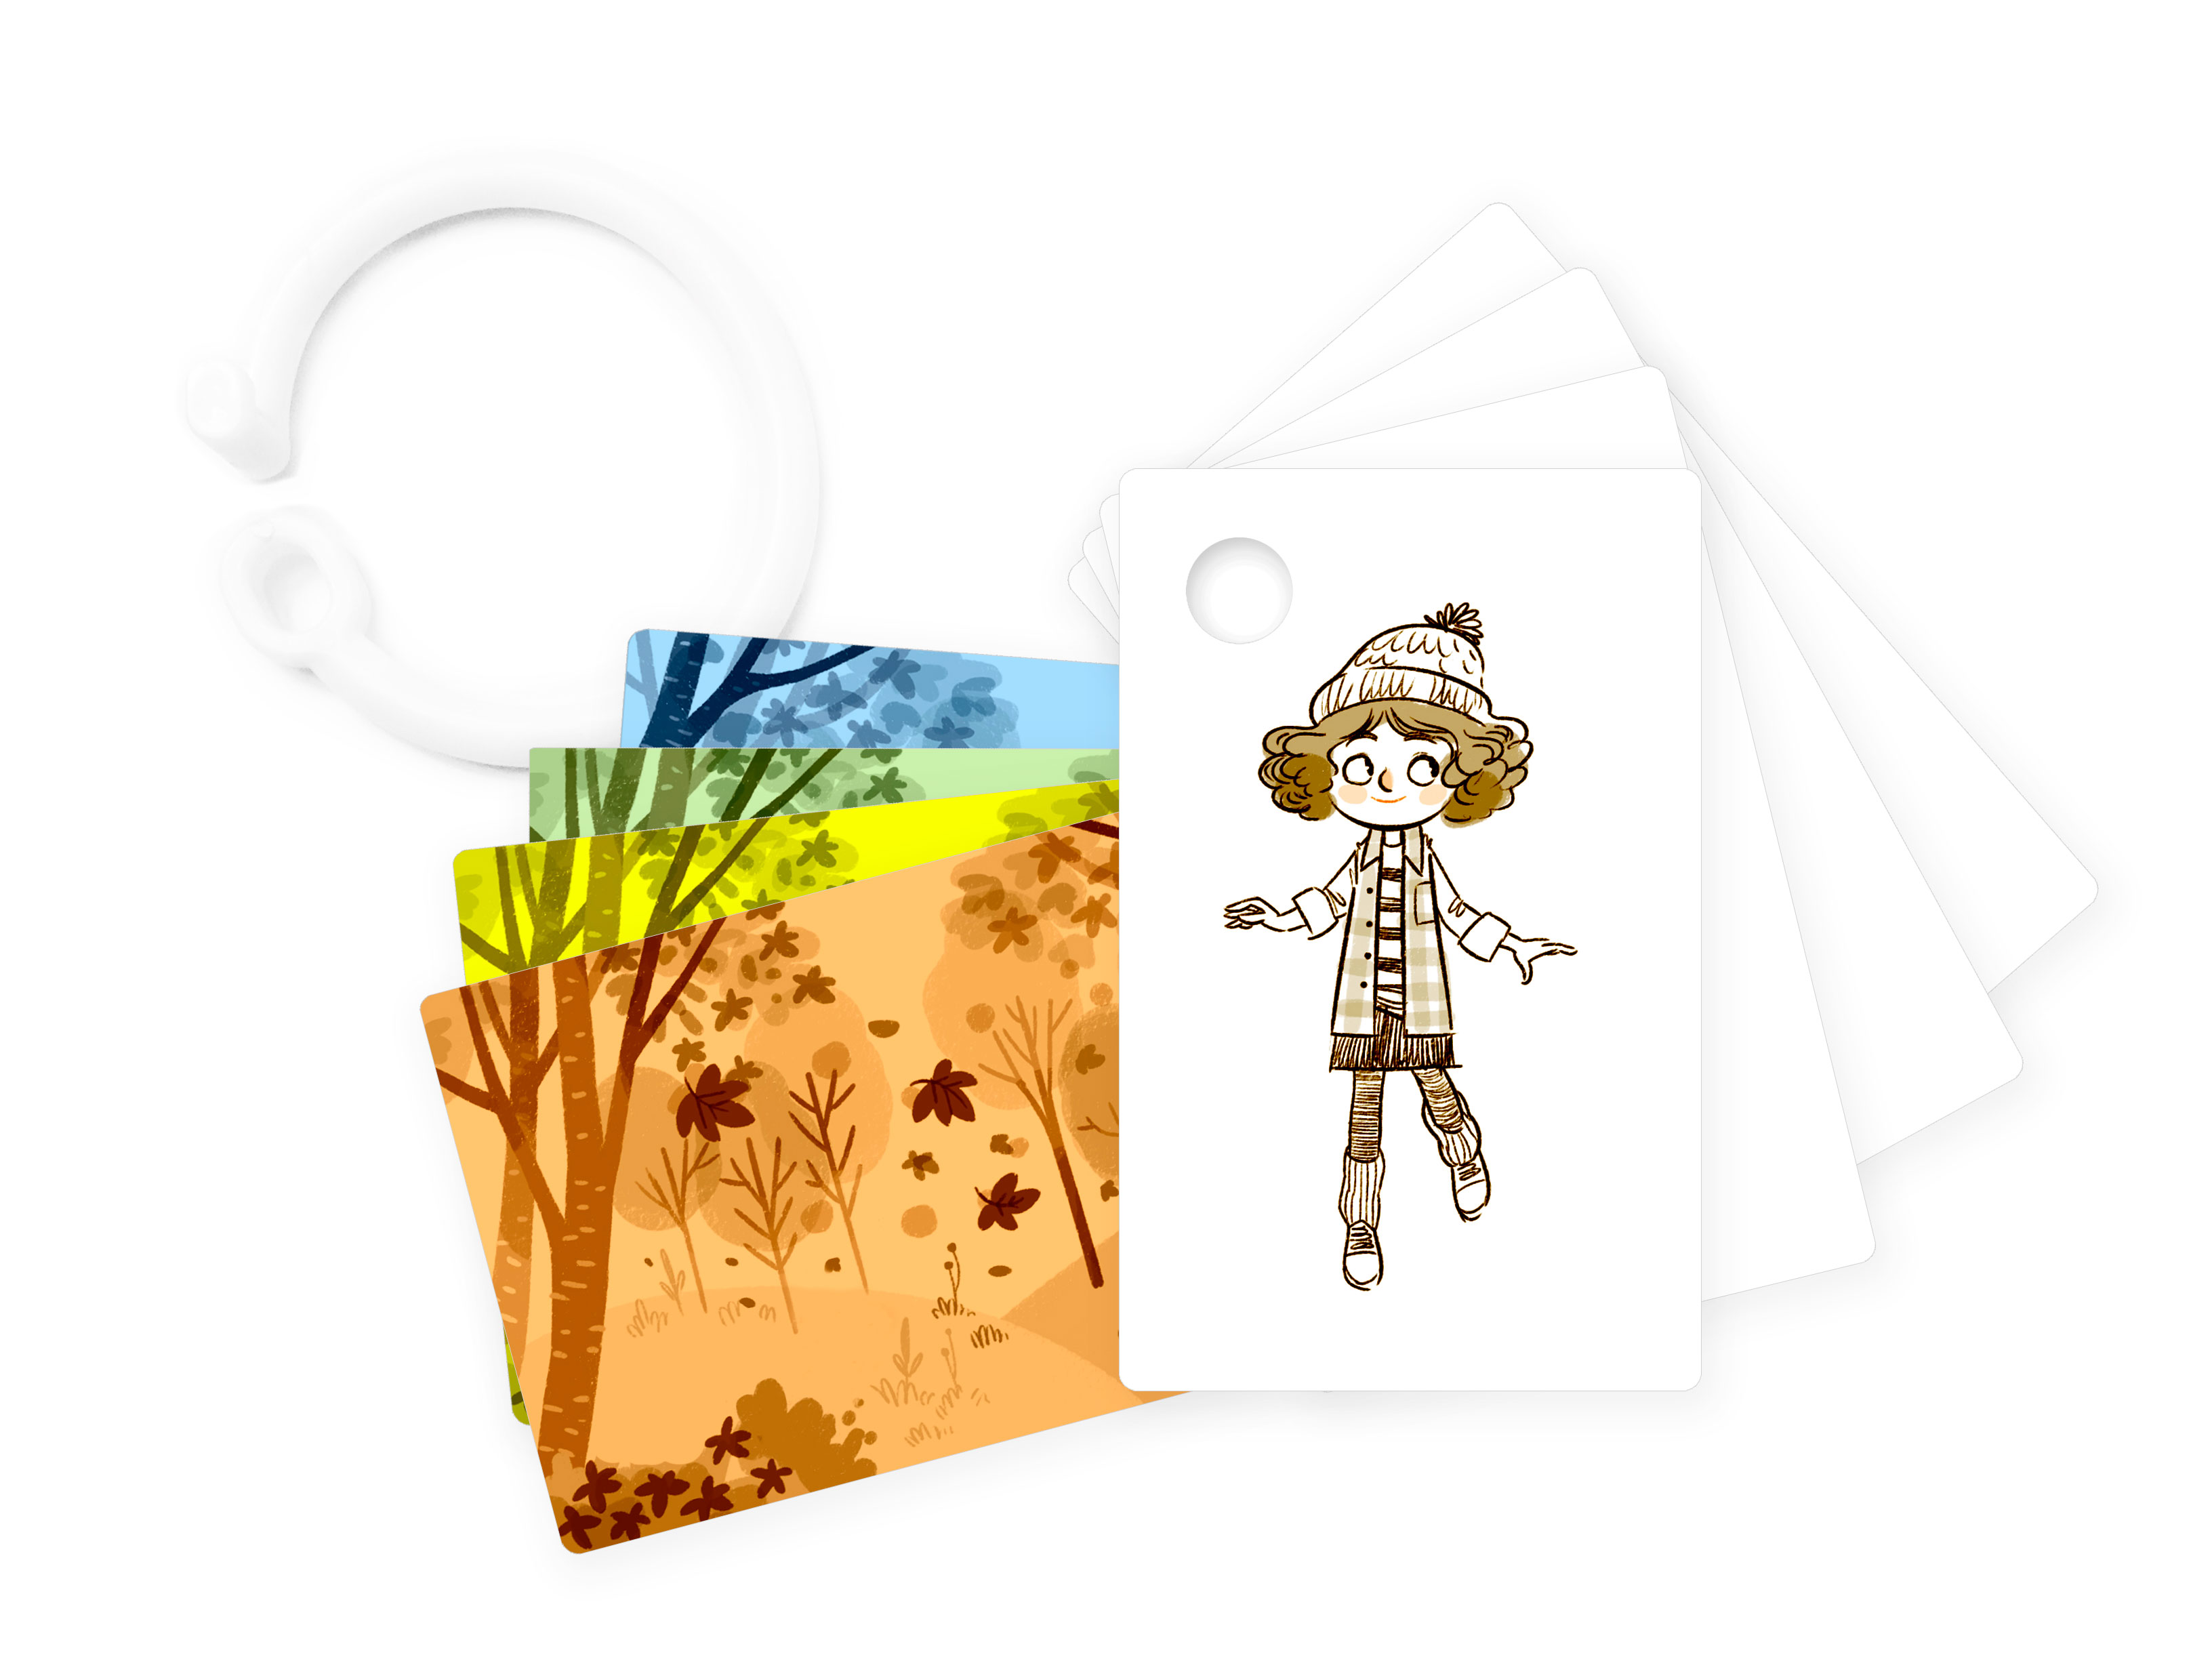 Educational wallet cards from So Awesome via Toby & Roo :: daily inspiration for stylish parents and their kids.